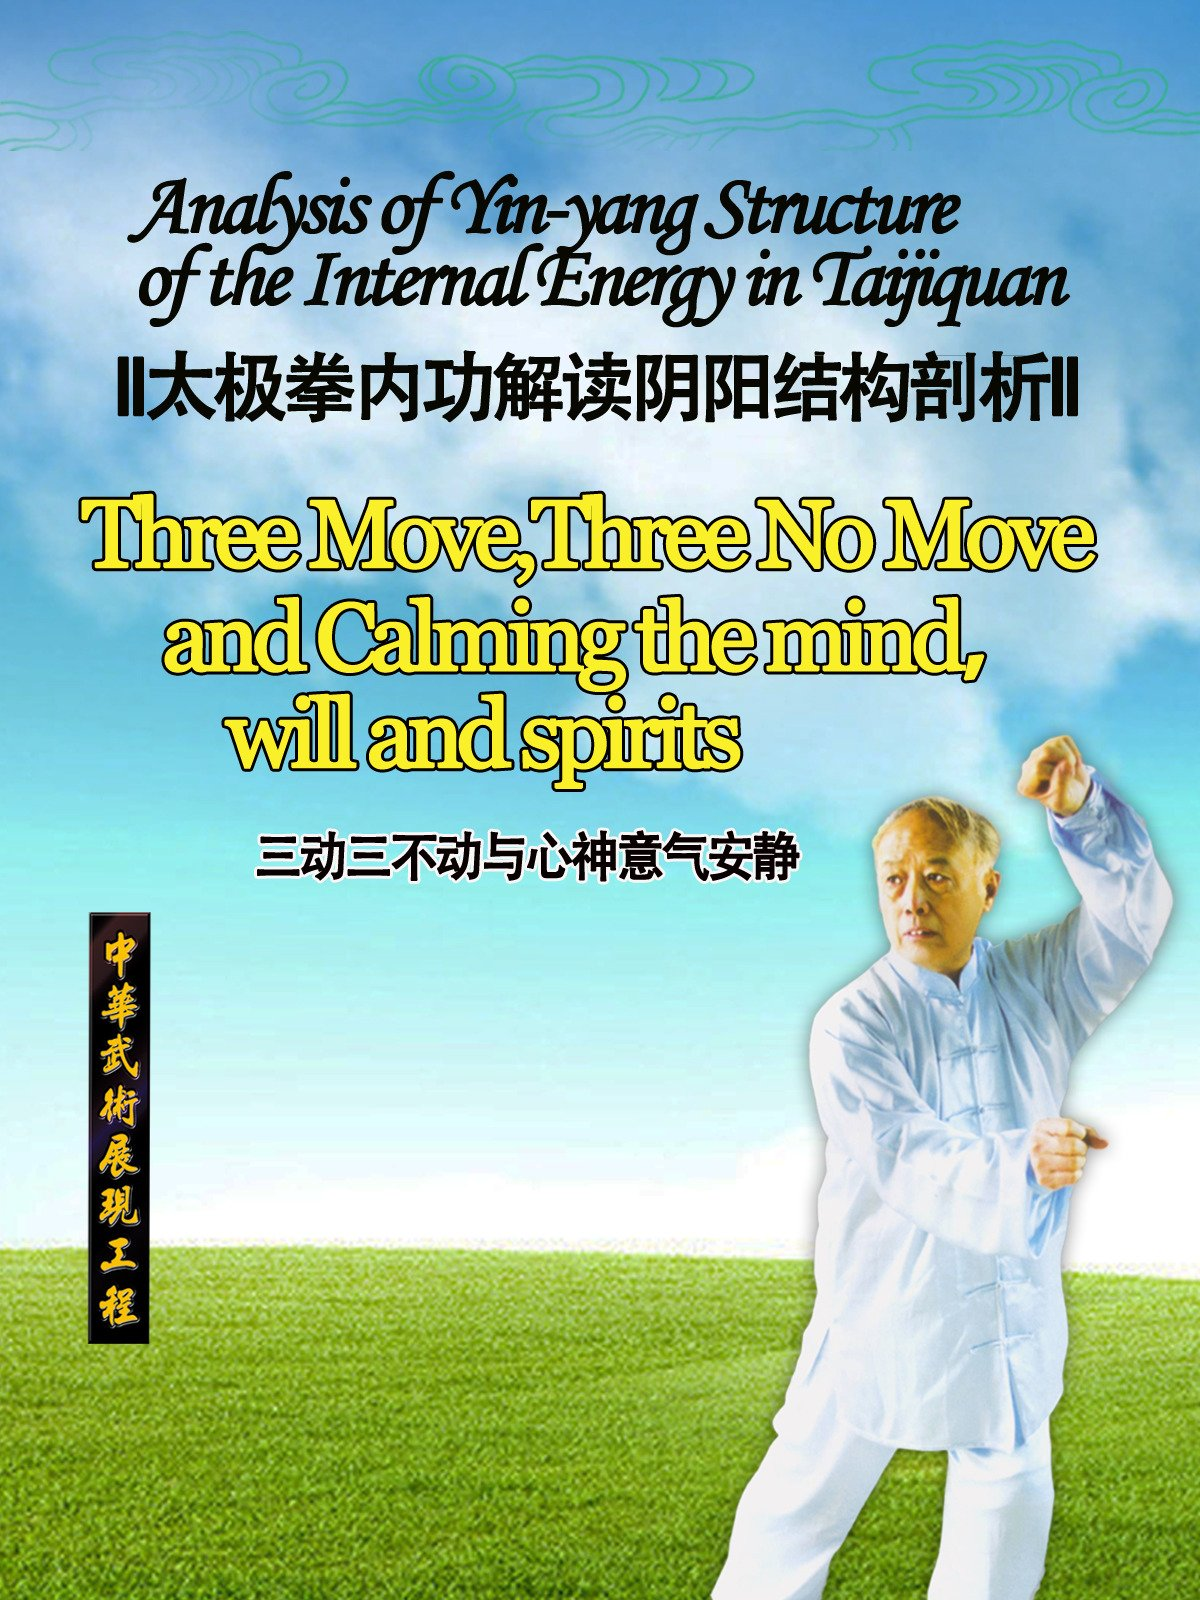 Analysis of Yin-yang Structure of the Internal Energy in Taijiquan-Three Move, Three No Move and Calming the mind, will and spirits